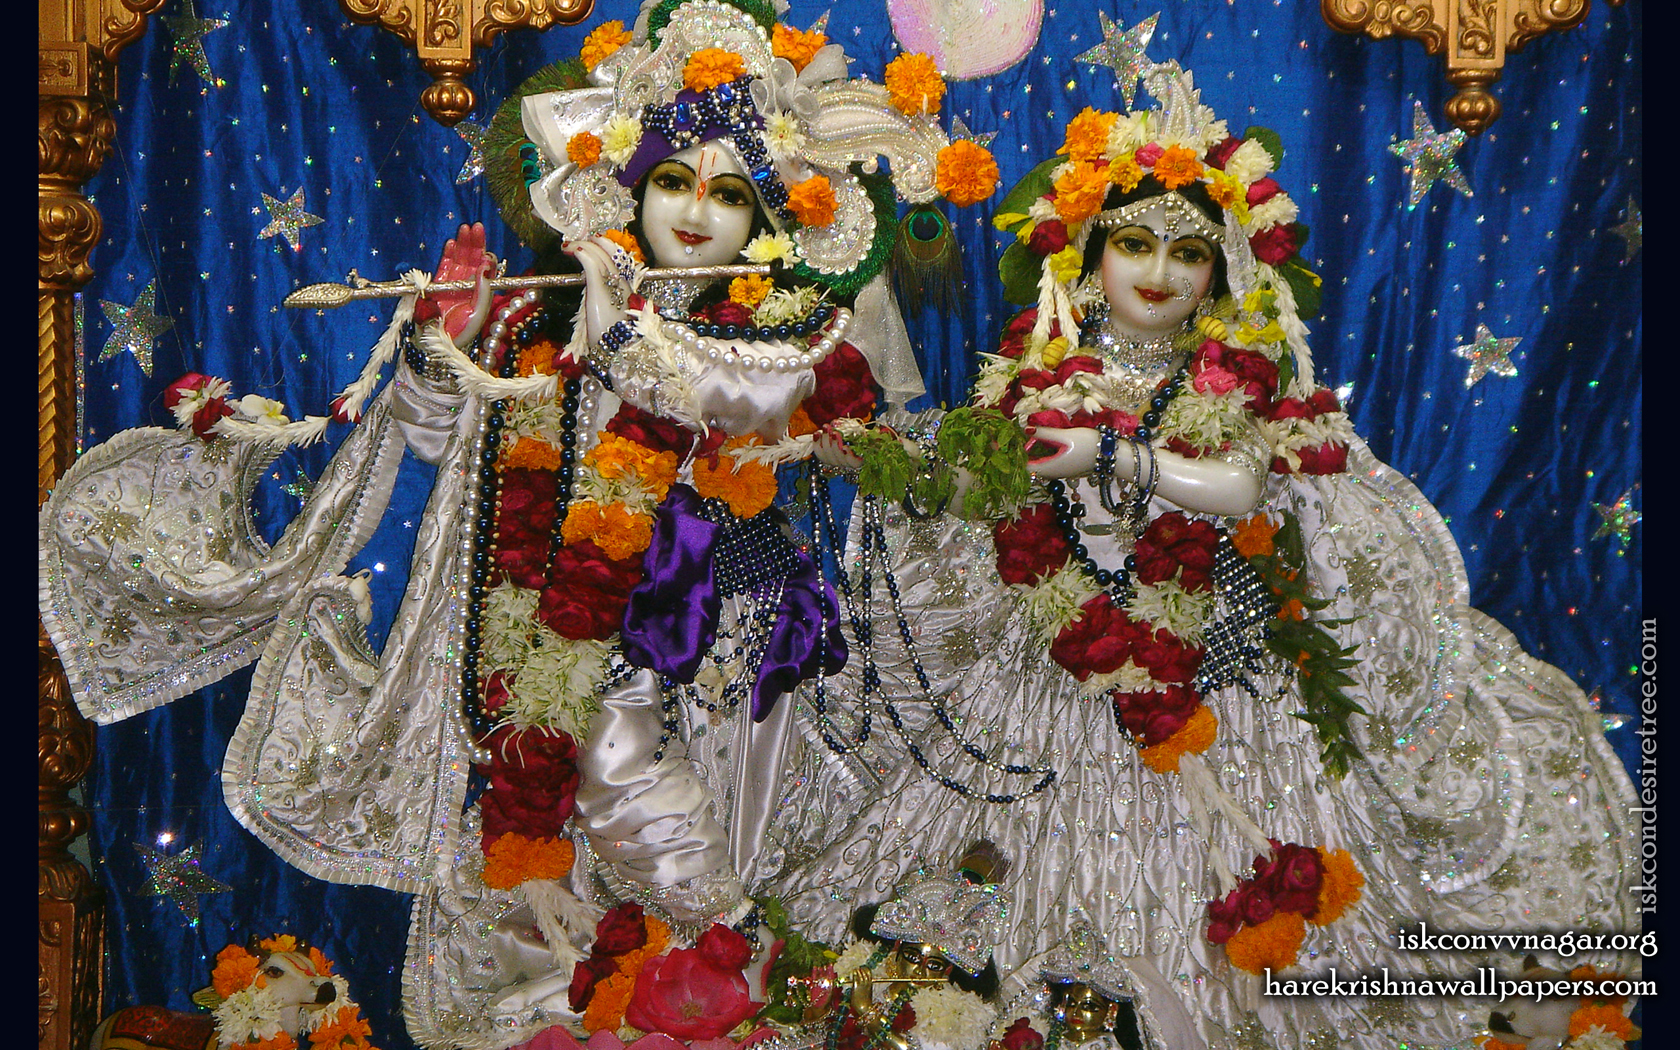 Sri Sri Radha Giridhari Wallpaper (020) Size 1680x1050 Download